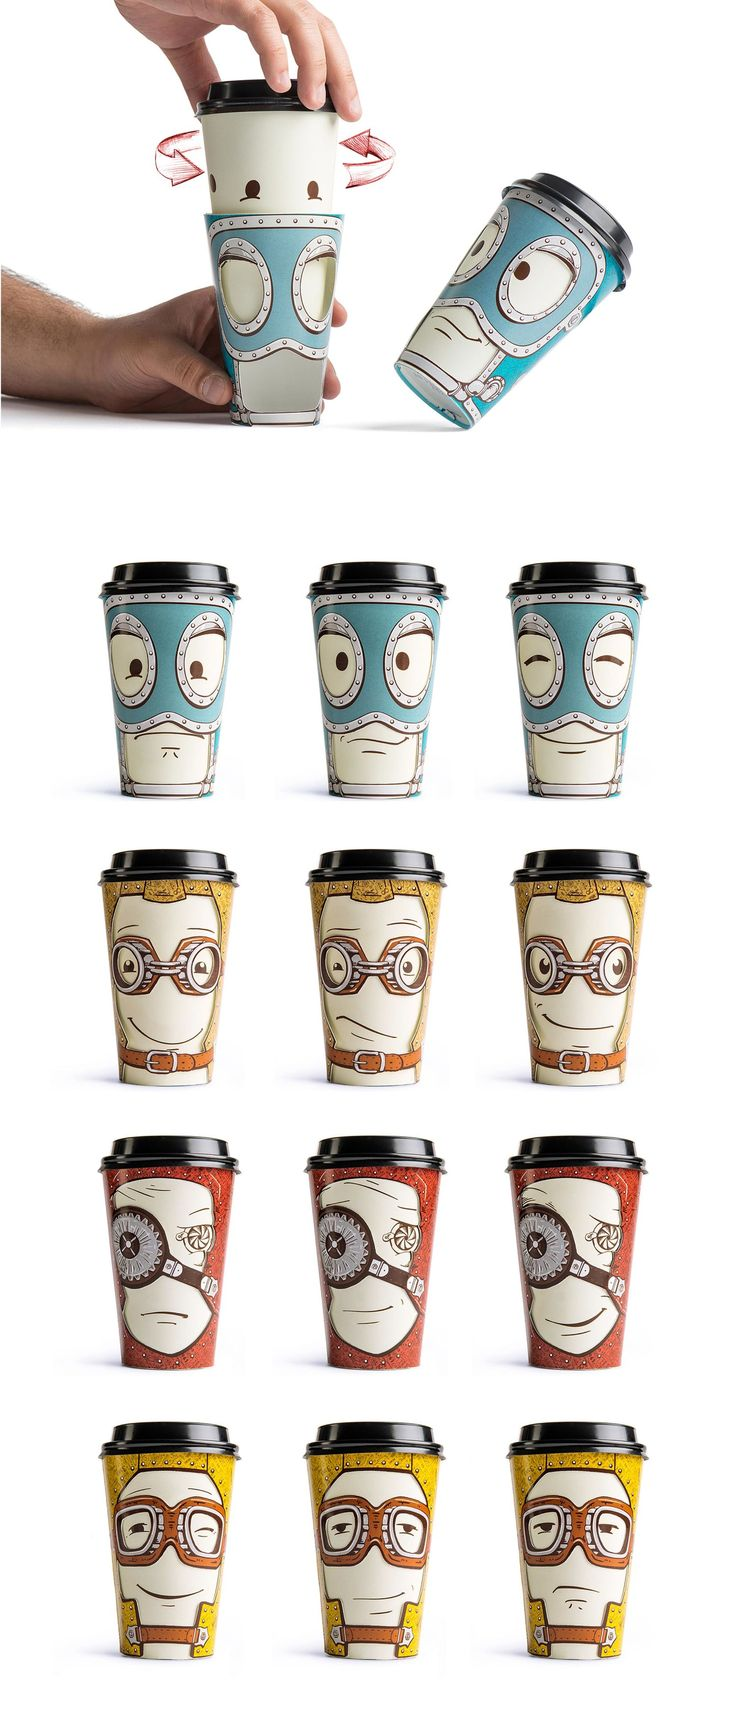 Take Away Coffee Cup — The Dieline http://www.thedieline.com/blog/2014/7/28/take-away-coffee-cup